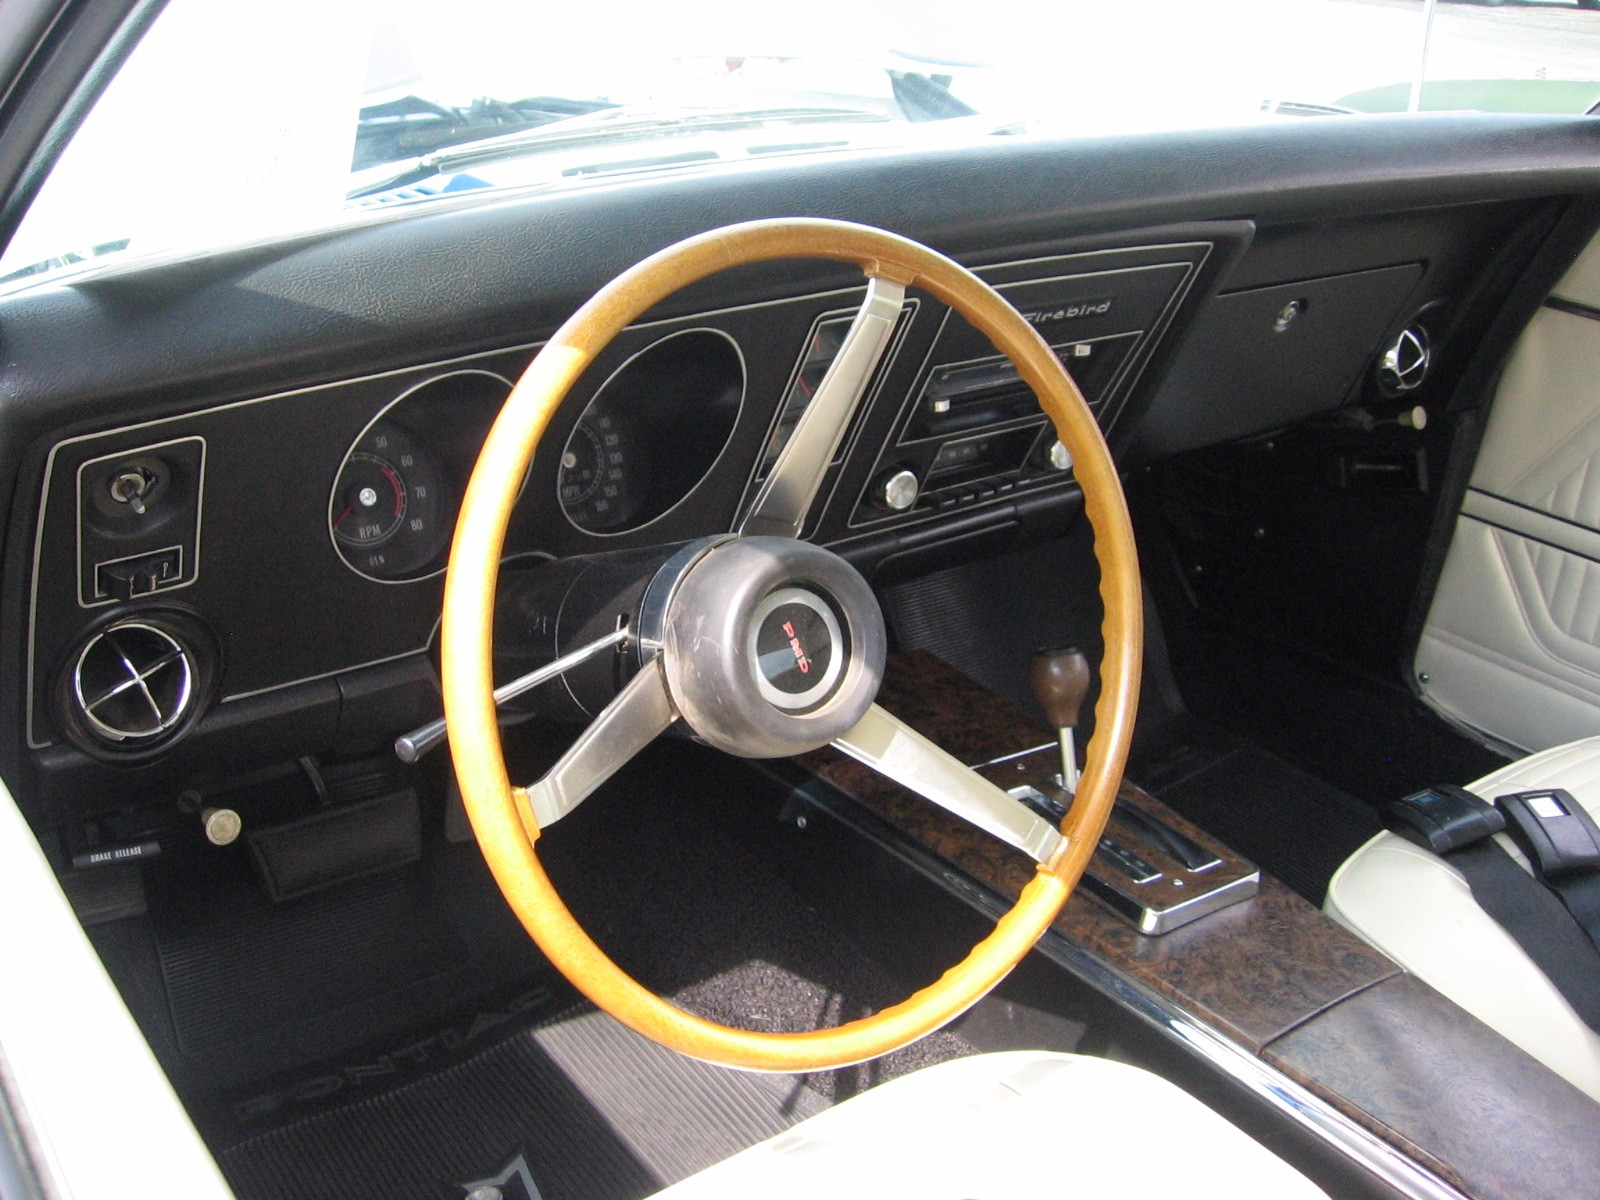 1969 Trans Am - Curt Richards - white interior (8)